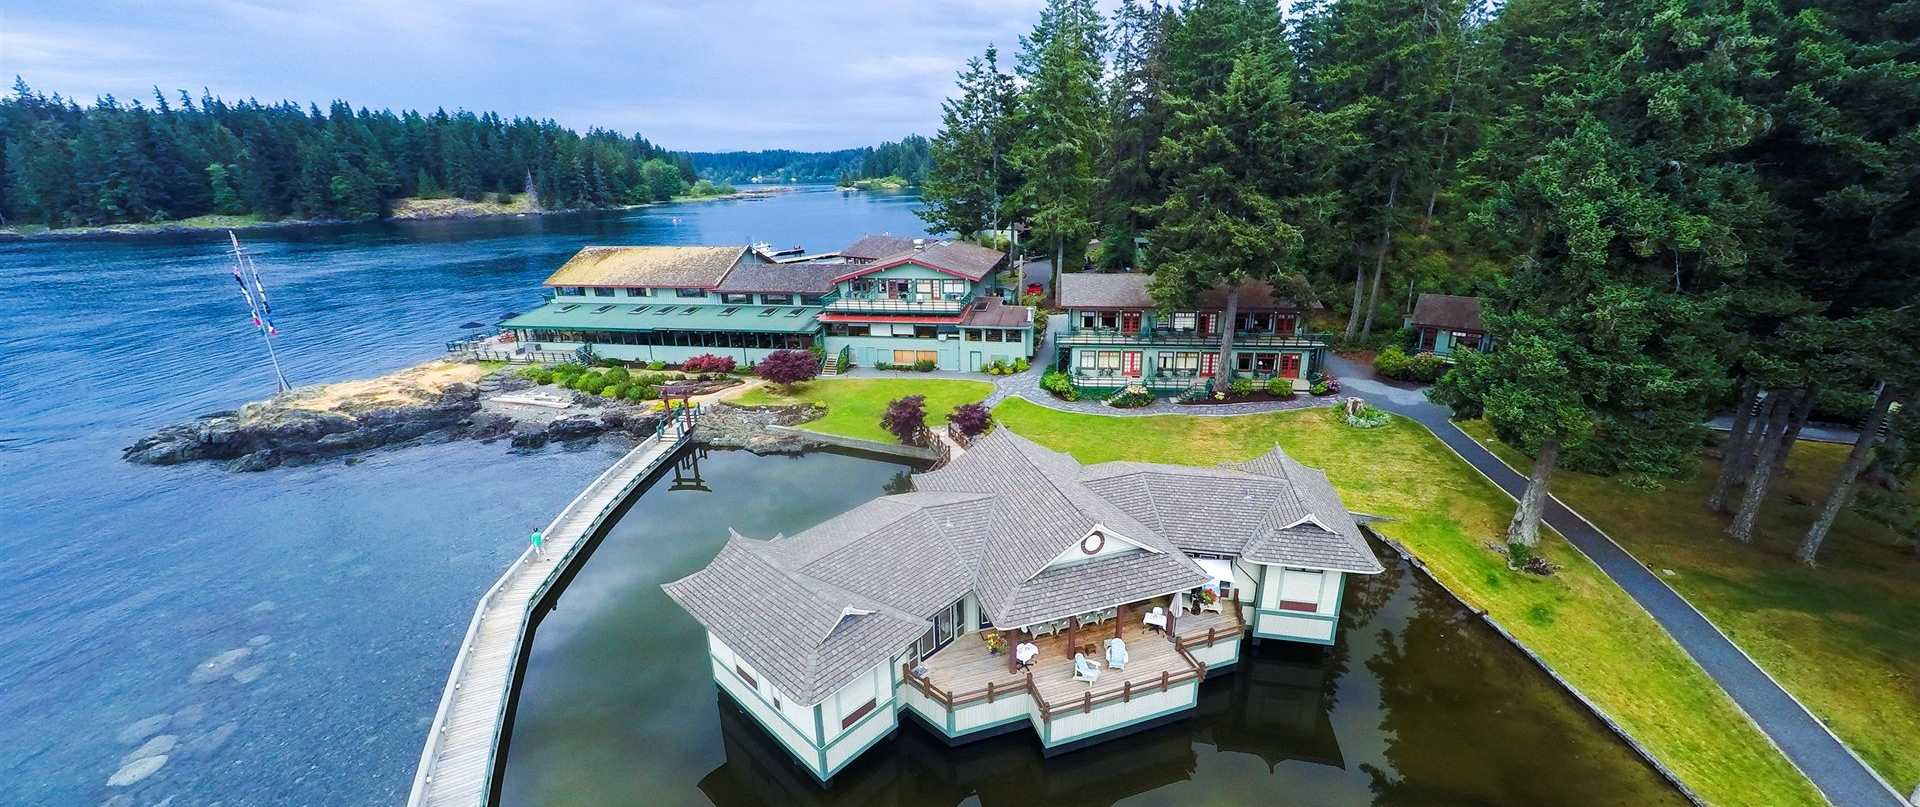 tofino helicopter tours with Quadra Island Bc Luxury Vacation on Vancouver Seaplane Charter in addition BandBinPA as well Helicopter Pads as well Jasper Specials in addition Peaks To Pacific.